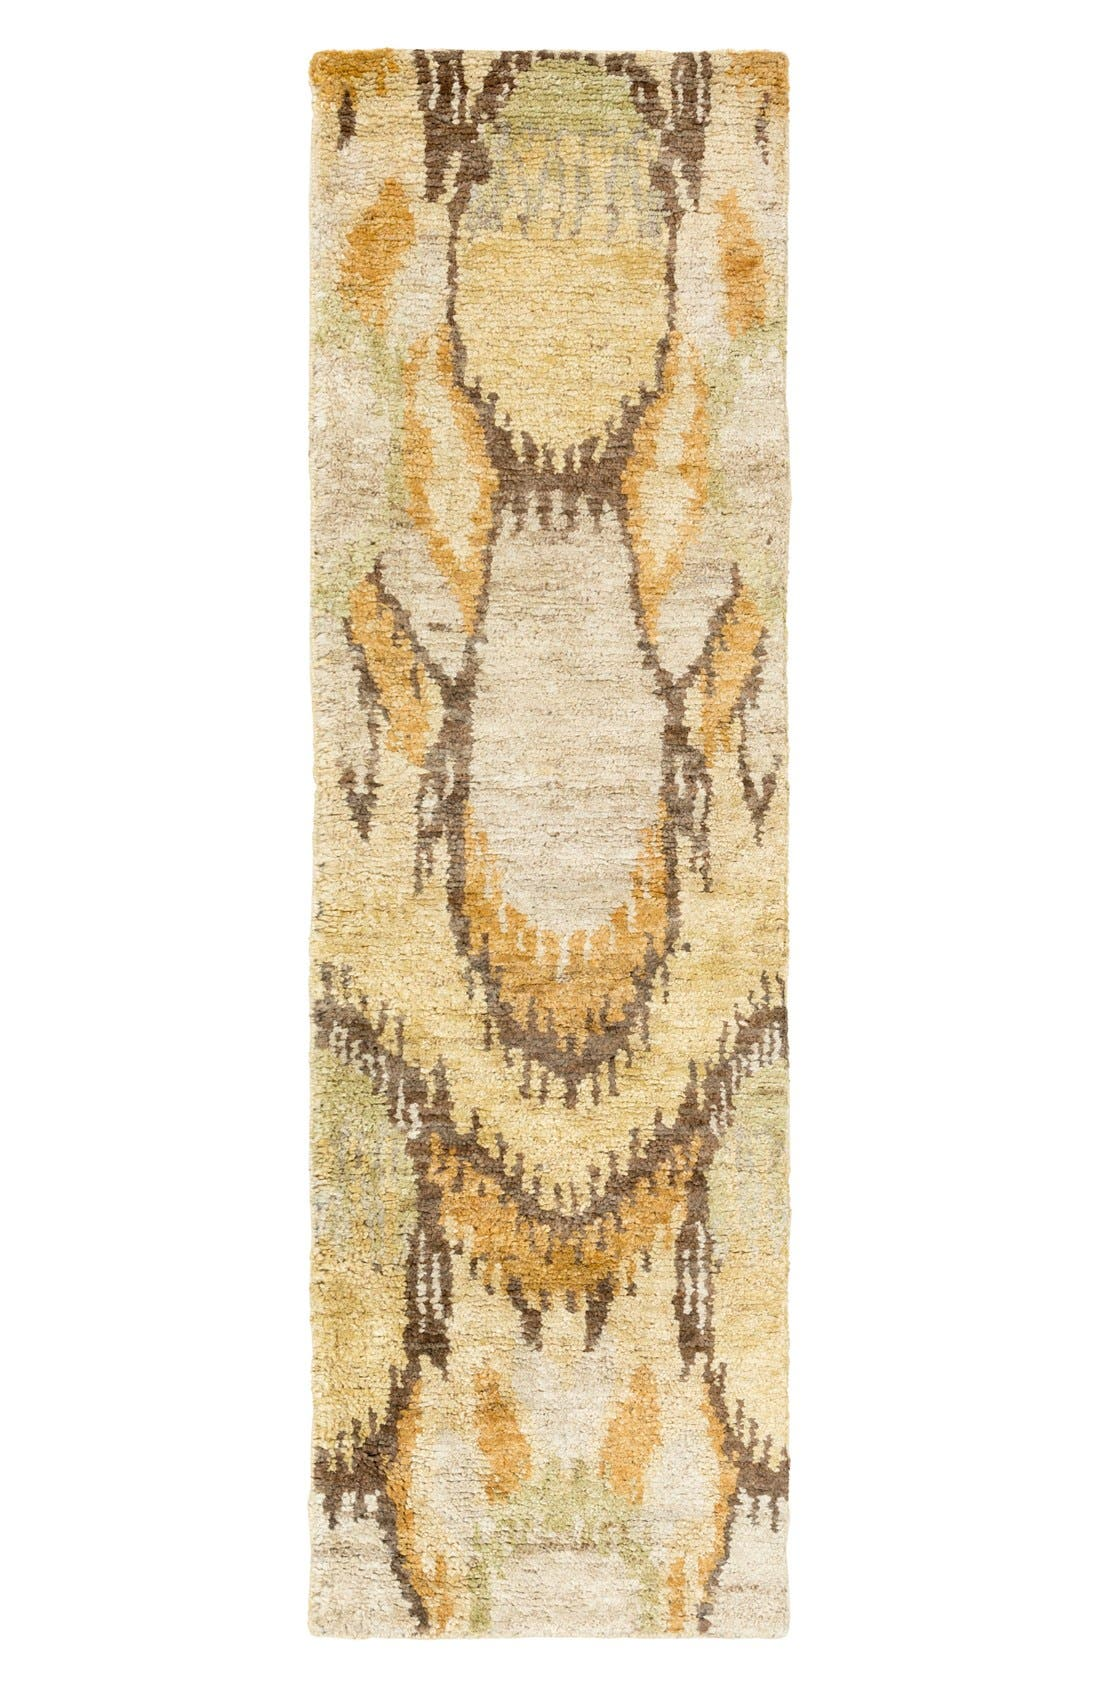 'Scarborough' Jute Rug,                             Alternate thumbnail 3, color,                             Gold/ Beige/ Olive